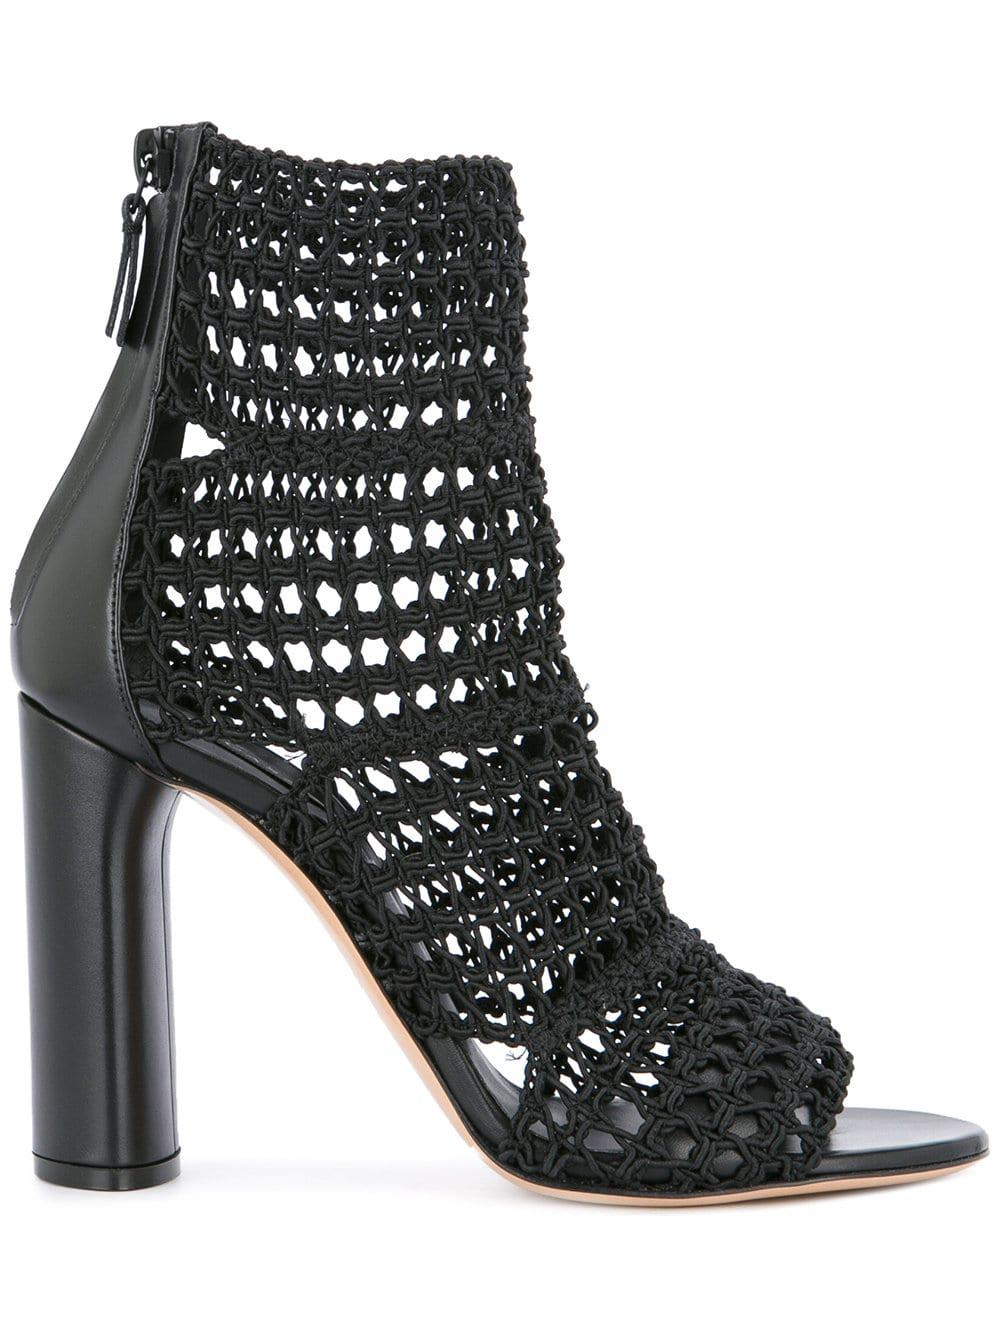 Casadei Leather Macramé Ankle Boots in Black